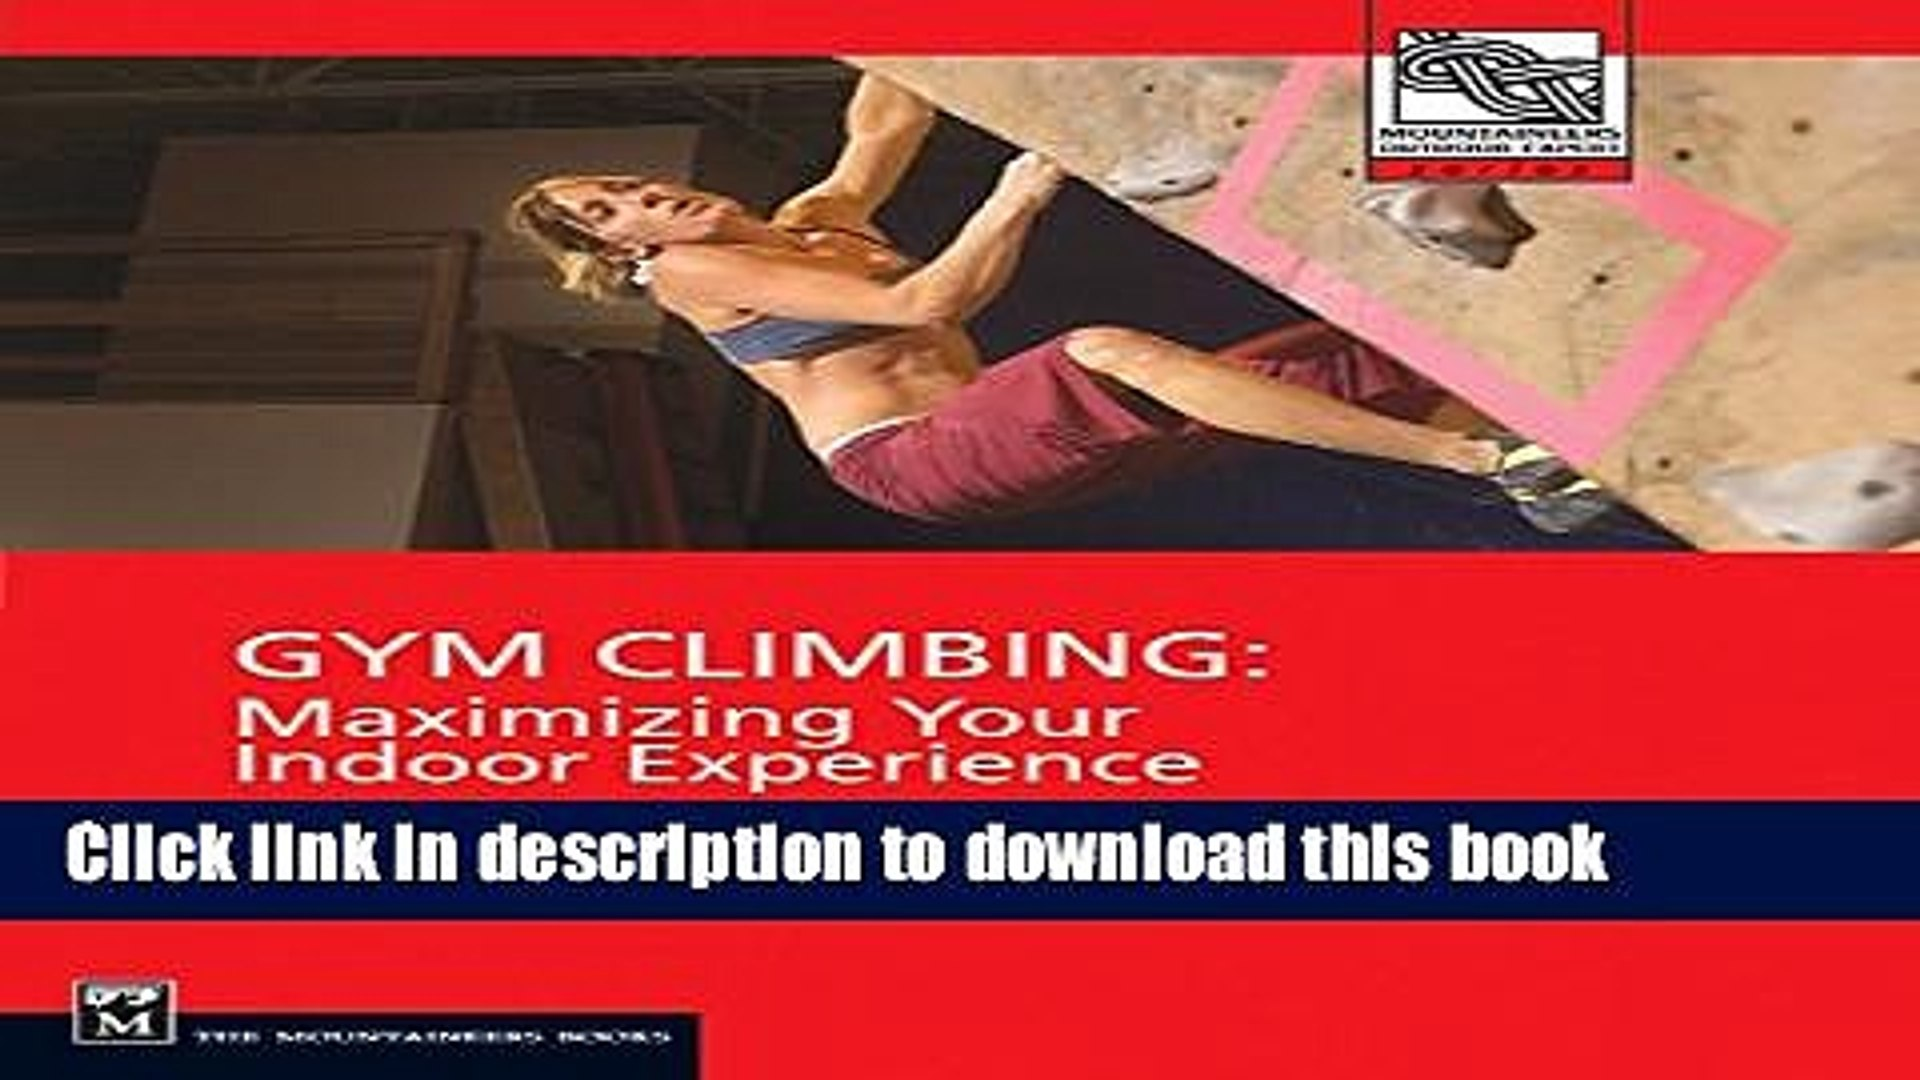 Gym Climbing Maximizing Your Indoor Experience